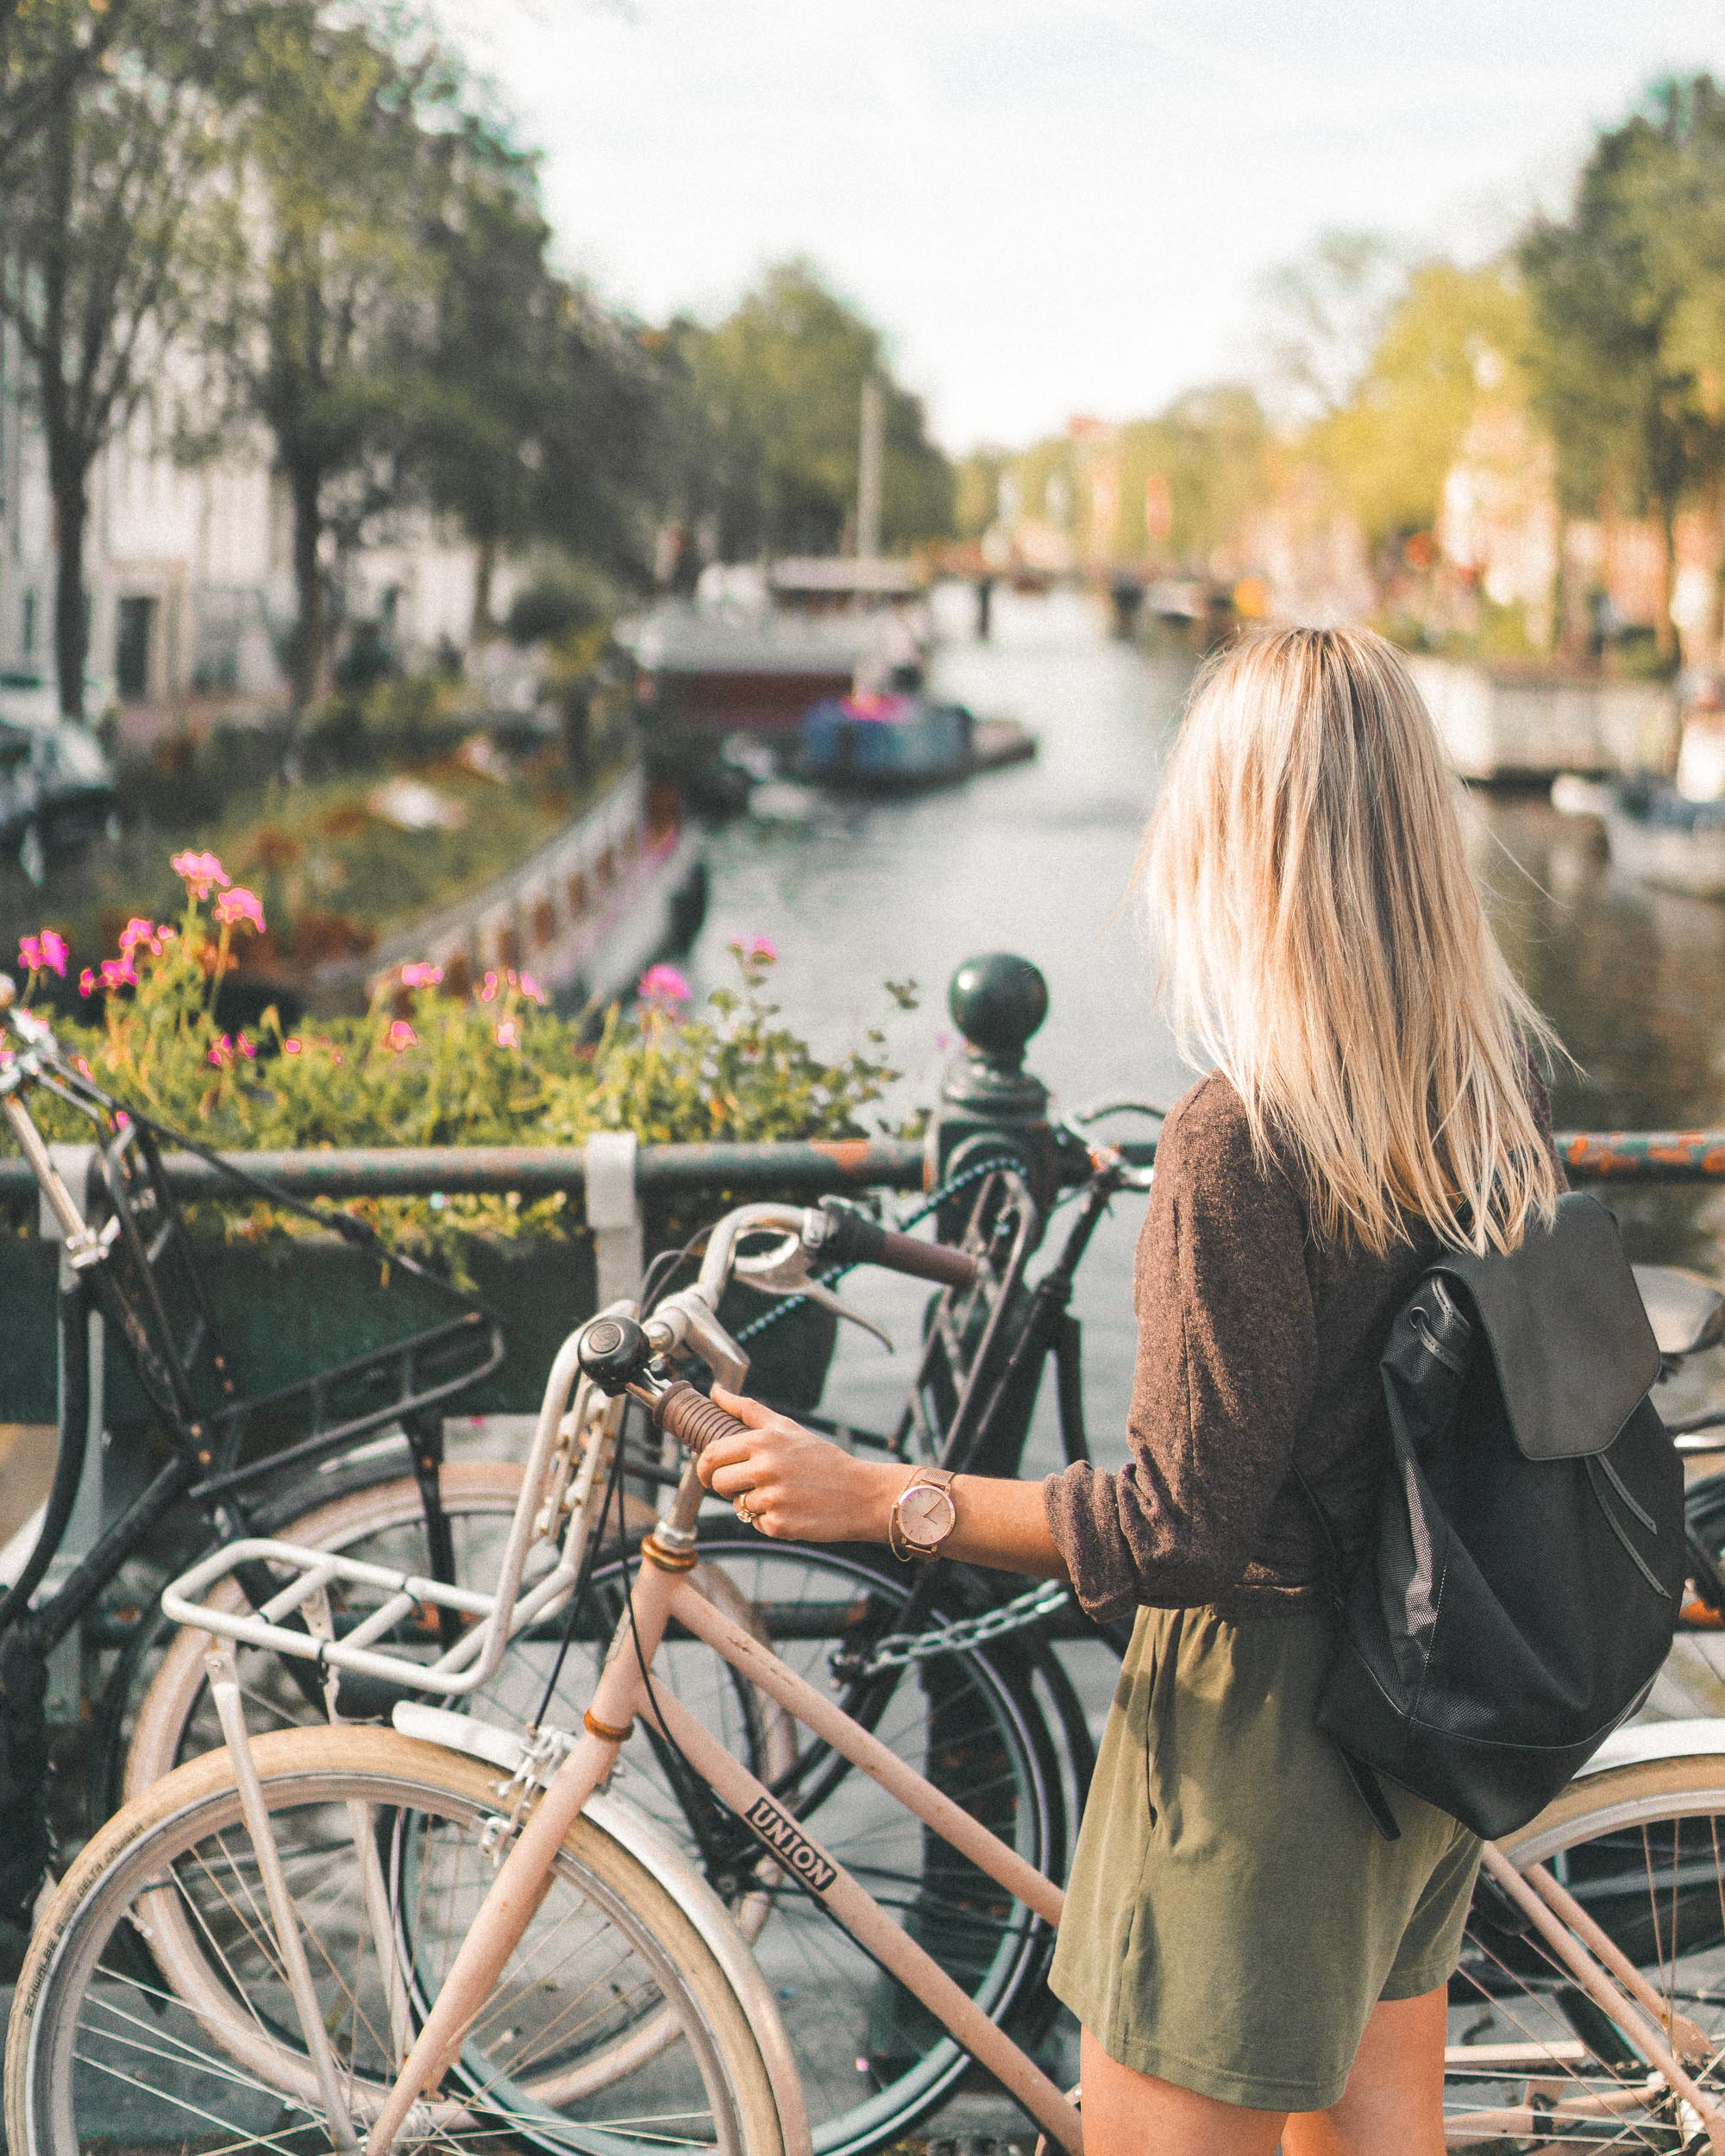 Biking in Amsterdam's 9 streets area, The Netherlands